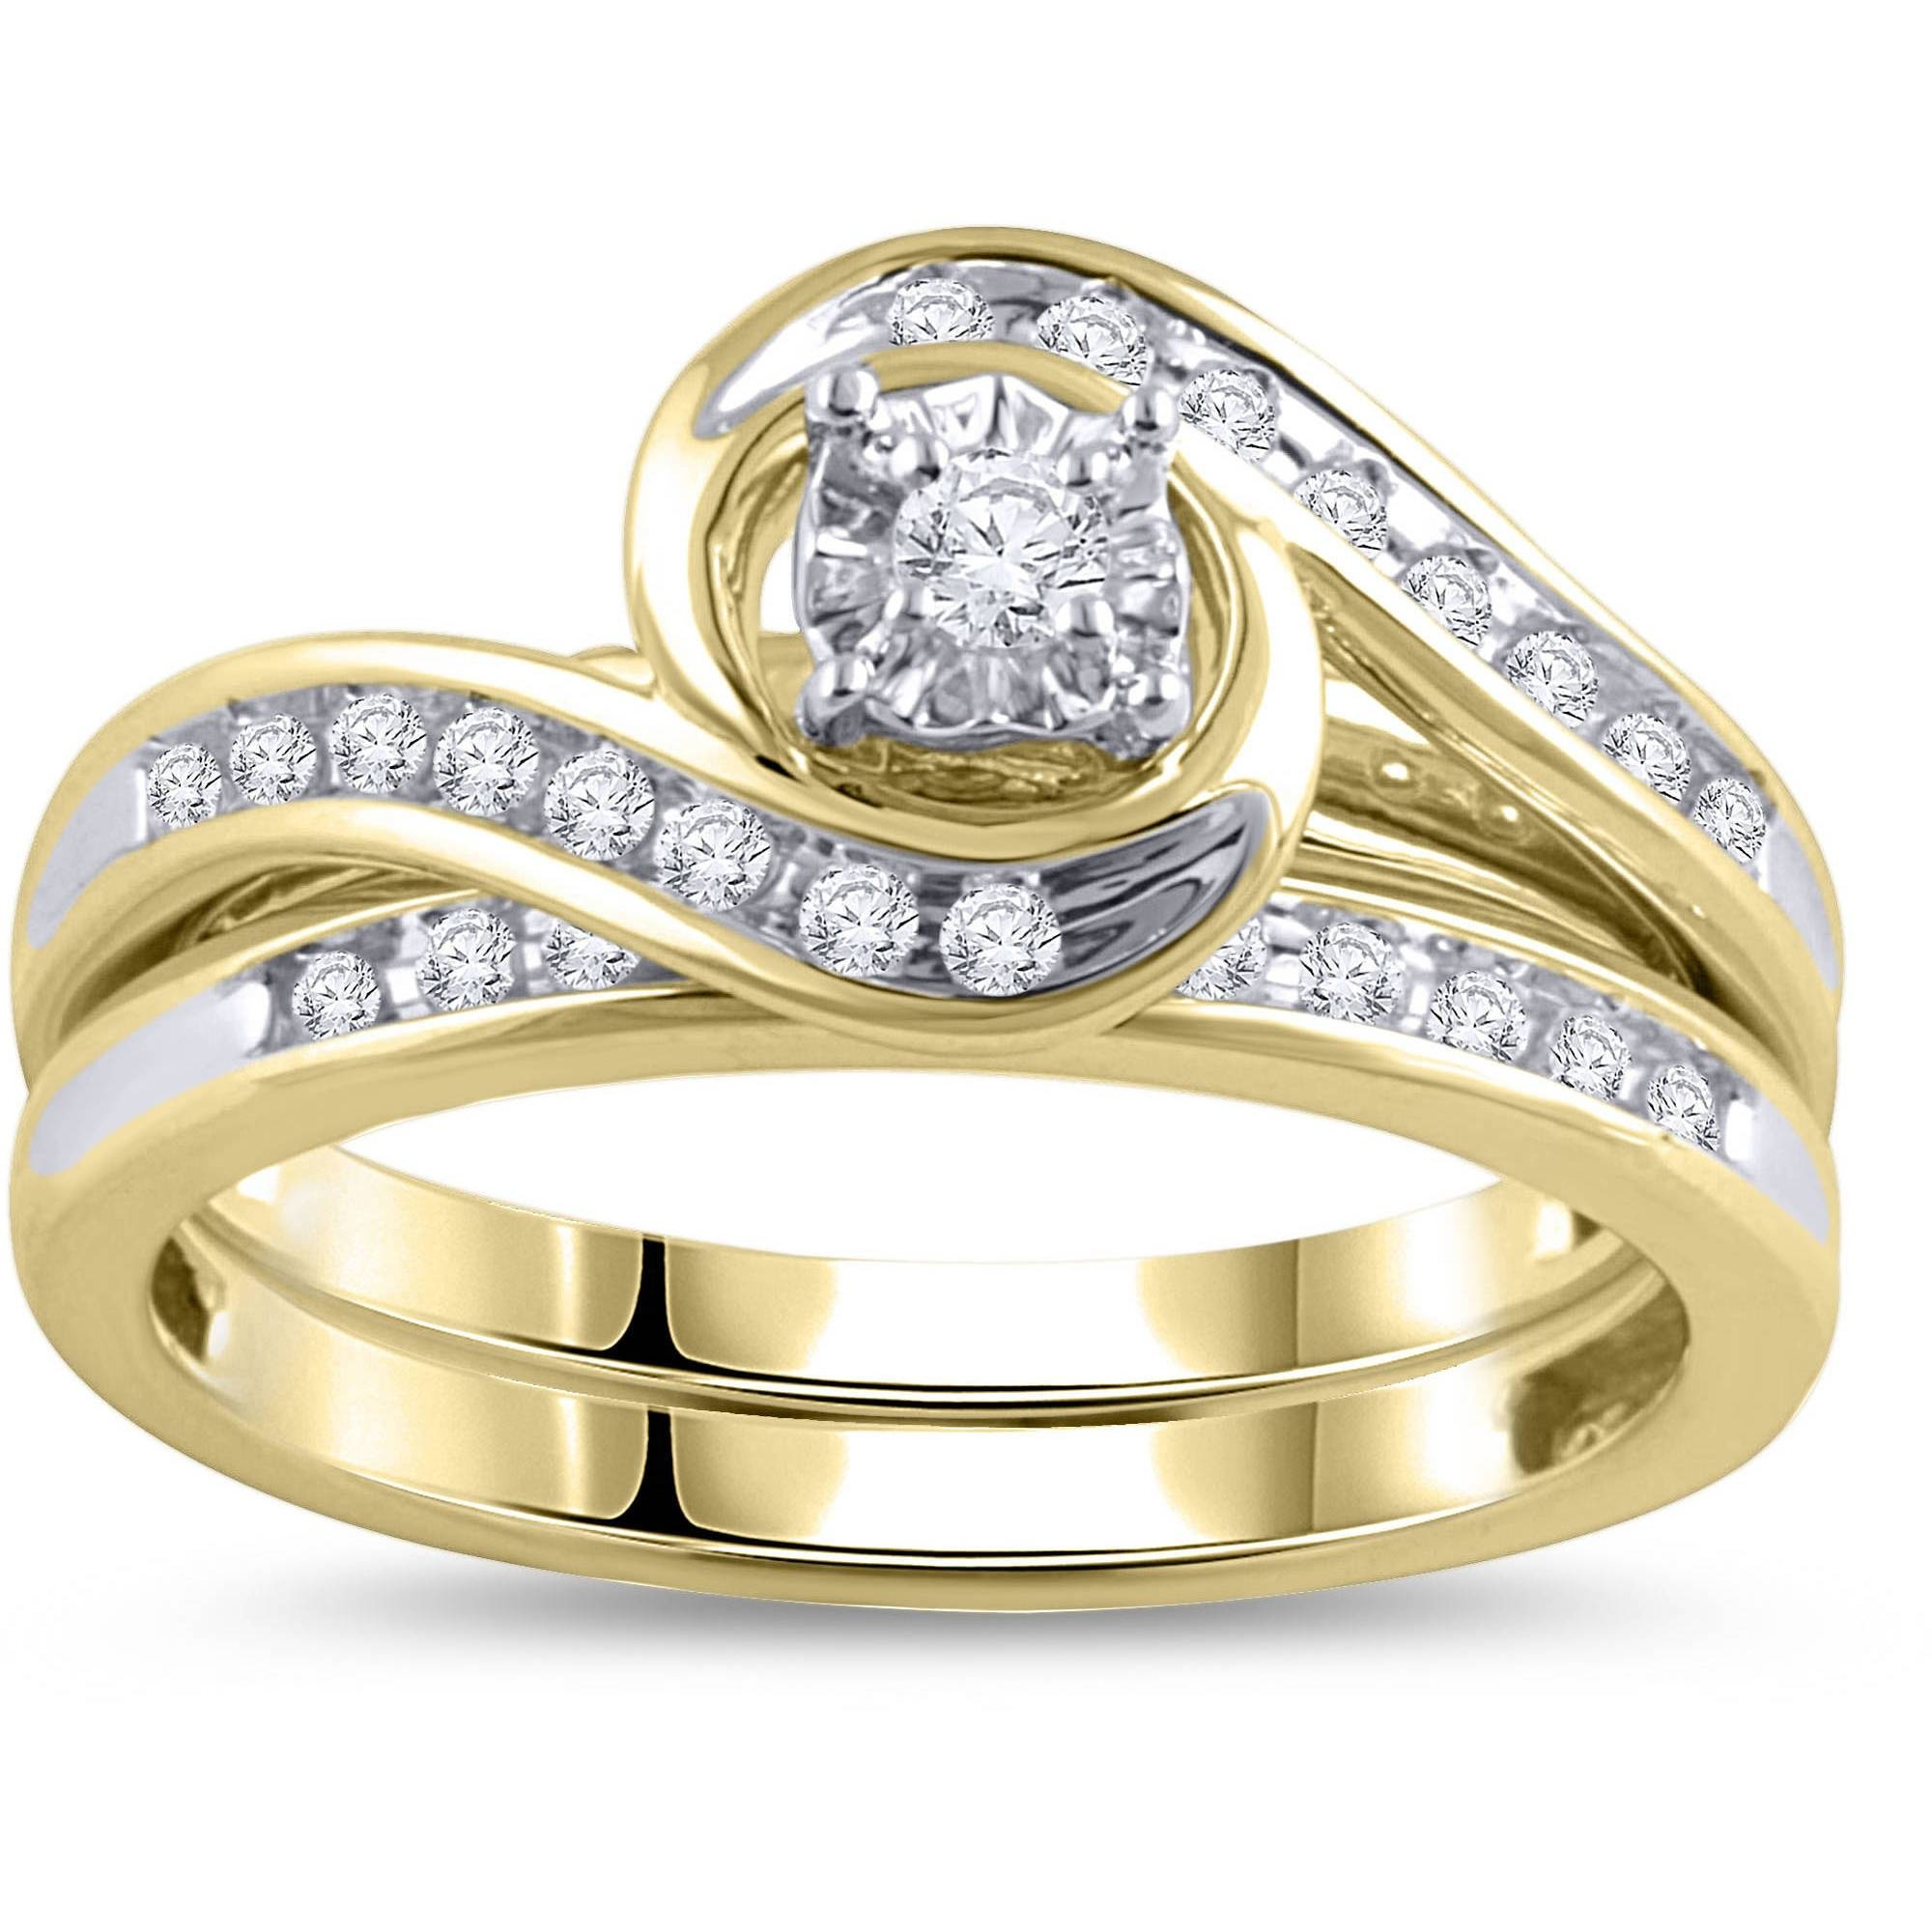 1/3 Carat Diamond Yellow Gold Bypass Bridal Ring Set – Walmart In Wedding Engagement Ring Sets (View 1 of 15)